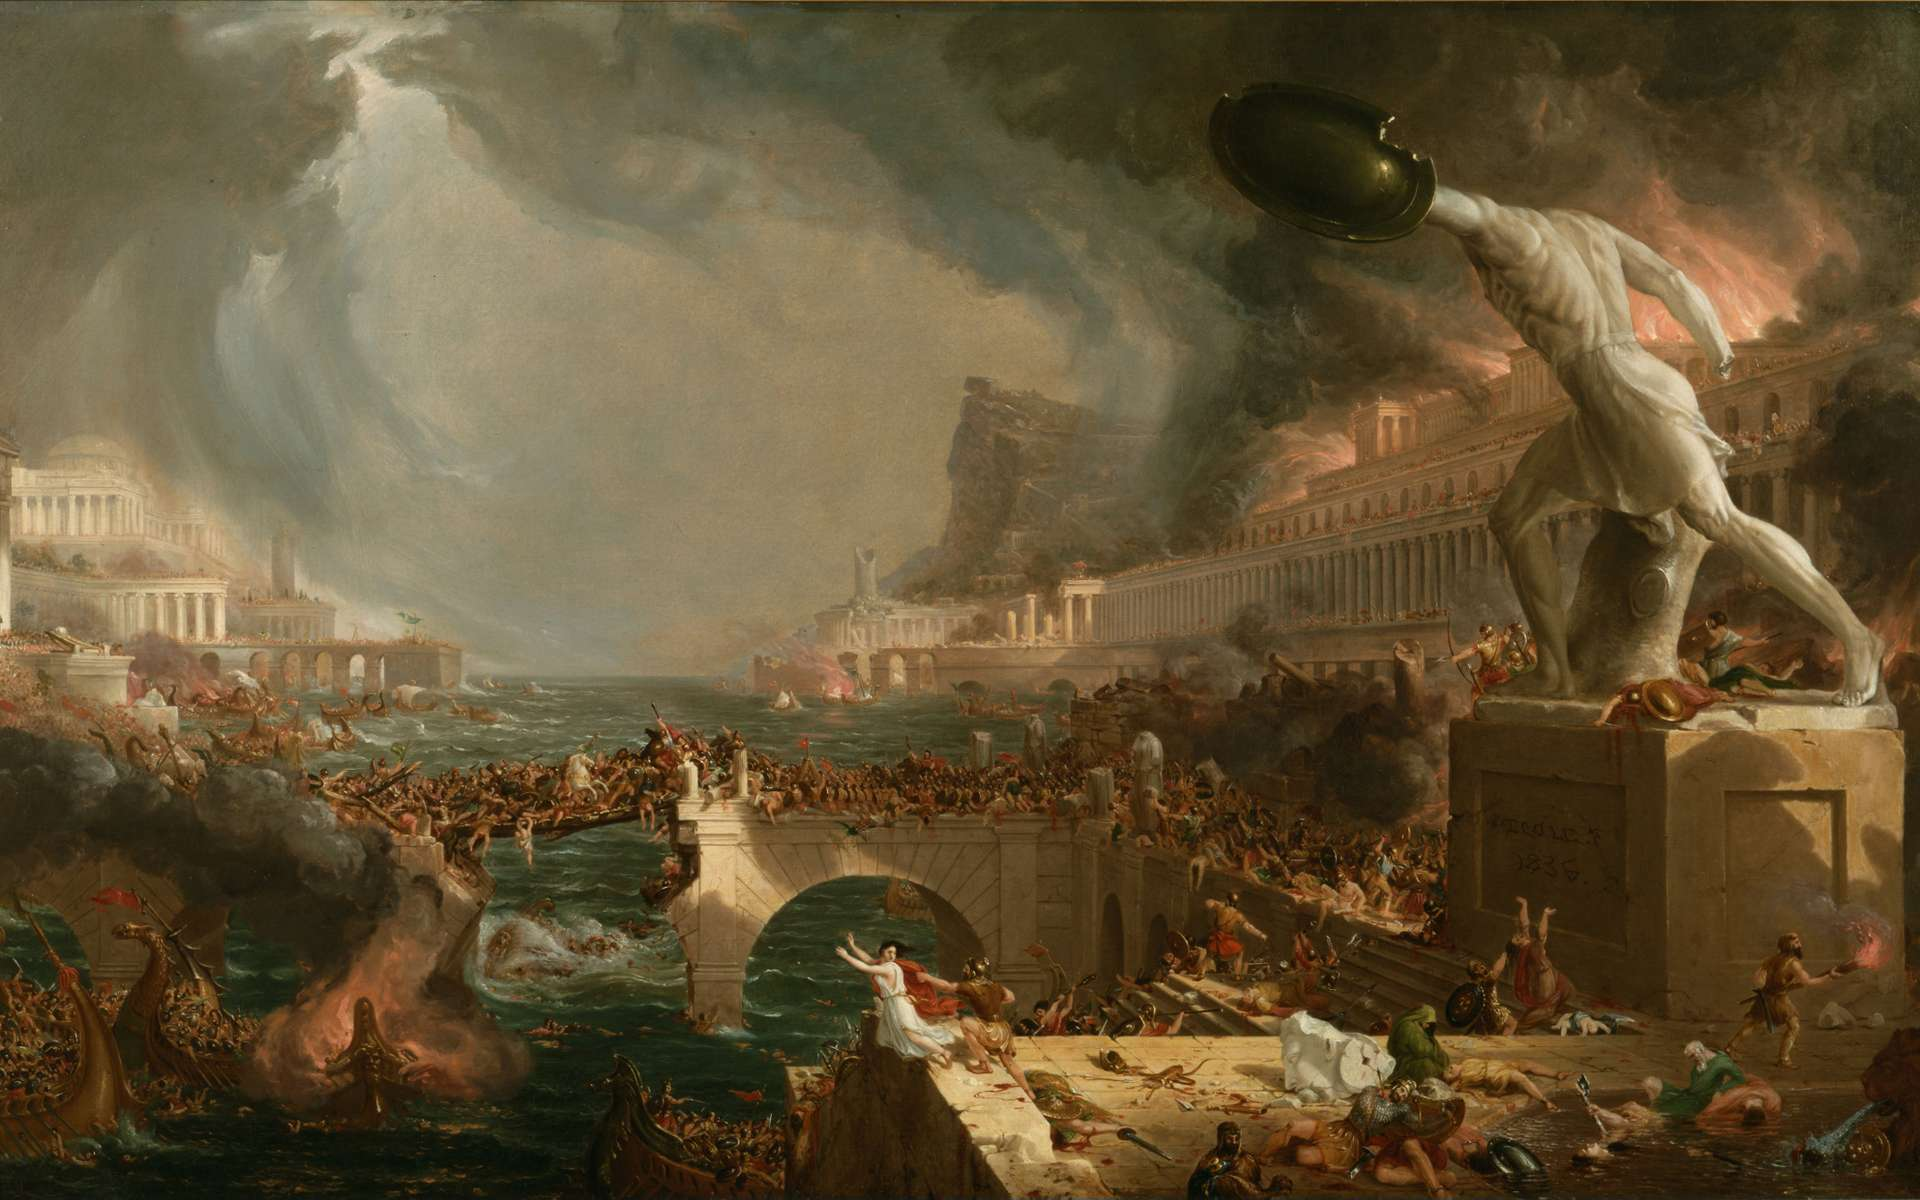 Fall of the Roman Empire: what are the causes?